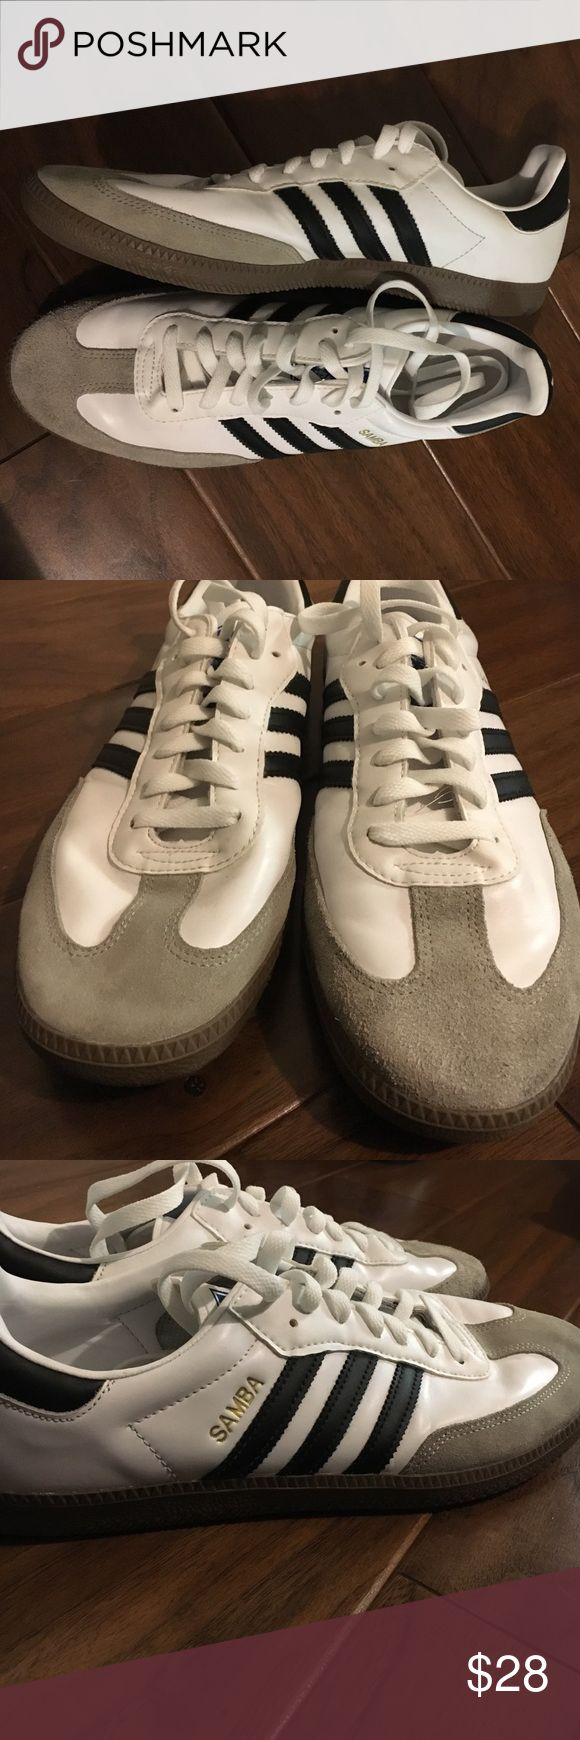 Adidas Samba men's shoes size 11 Great condition very clean! Pet free smoke free home Adidas Shoes Athletic Shoes